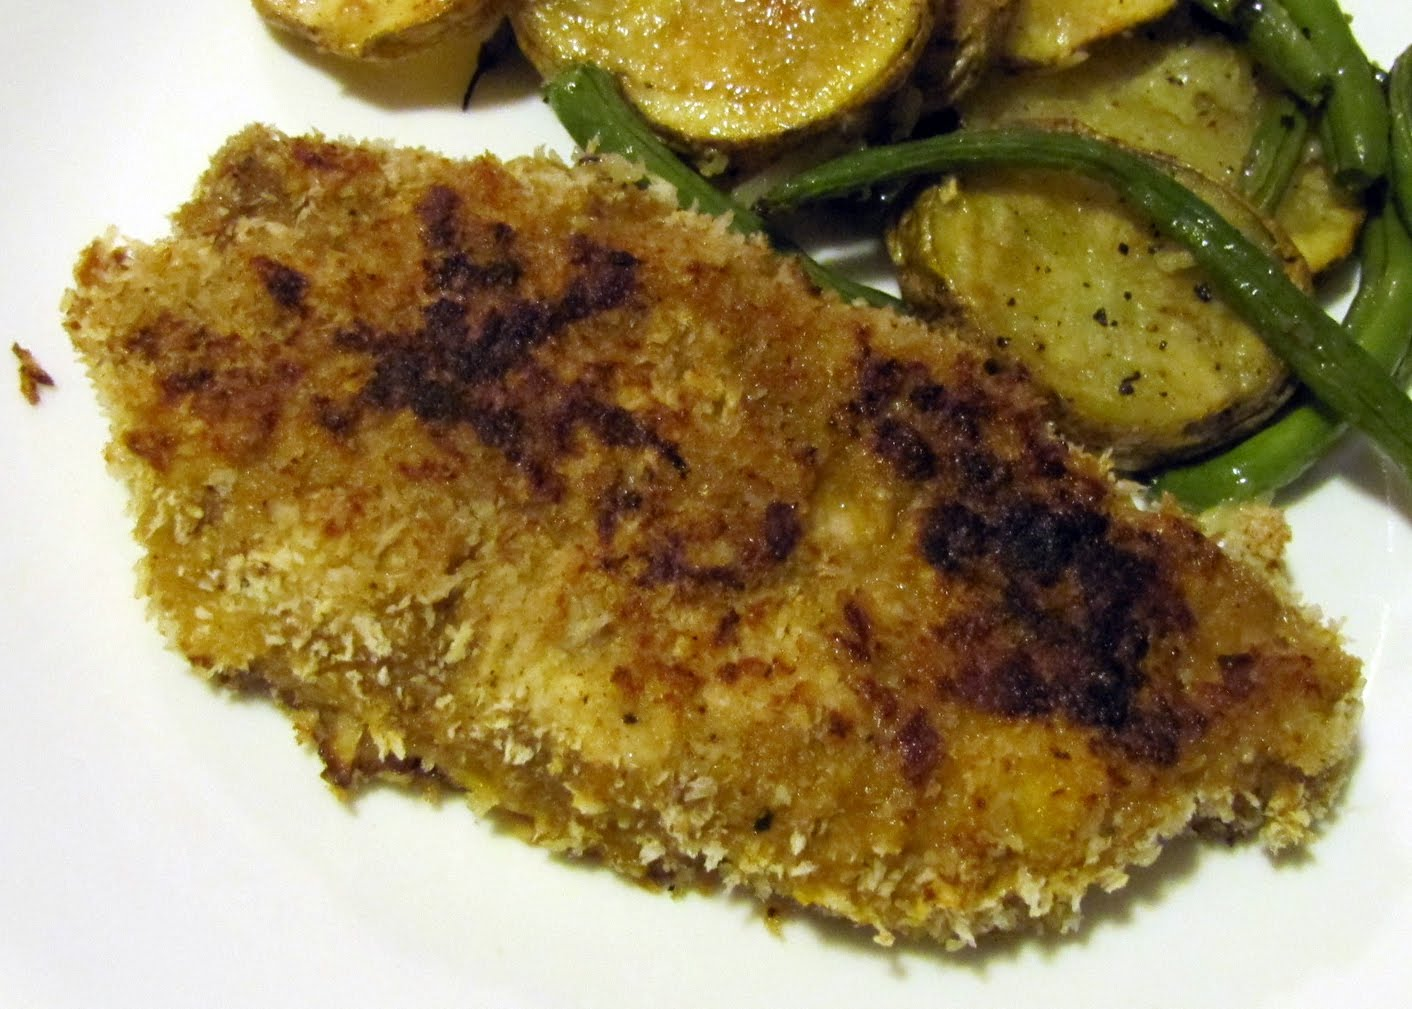 Smells Like Food in Here: Spiced Panko-Crusted Pork Chops